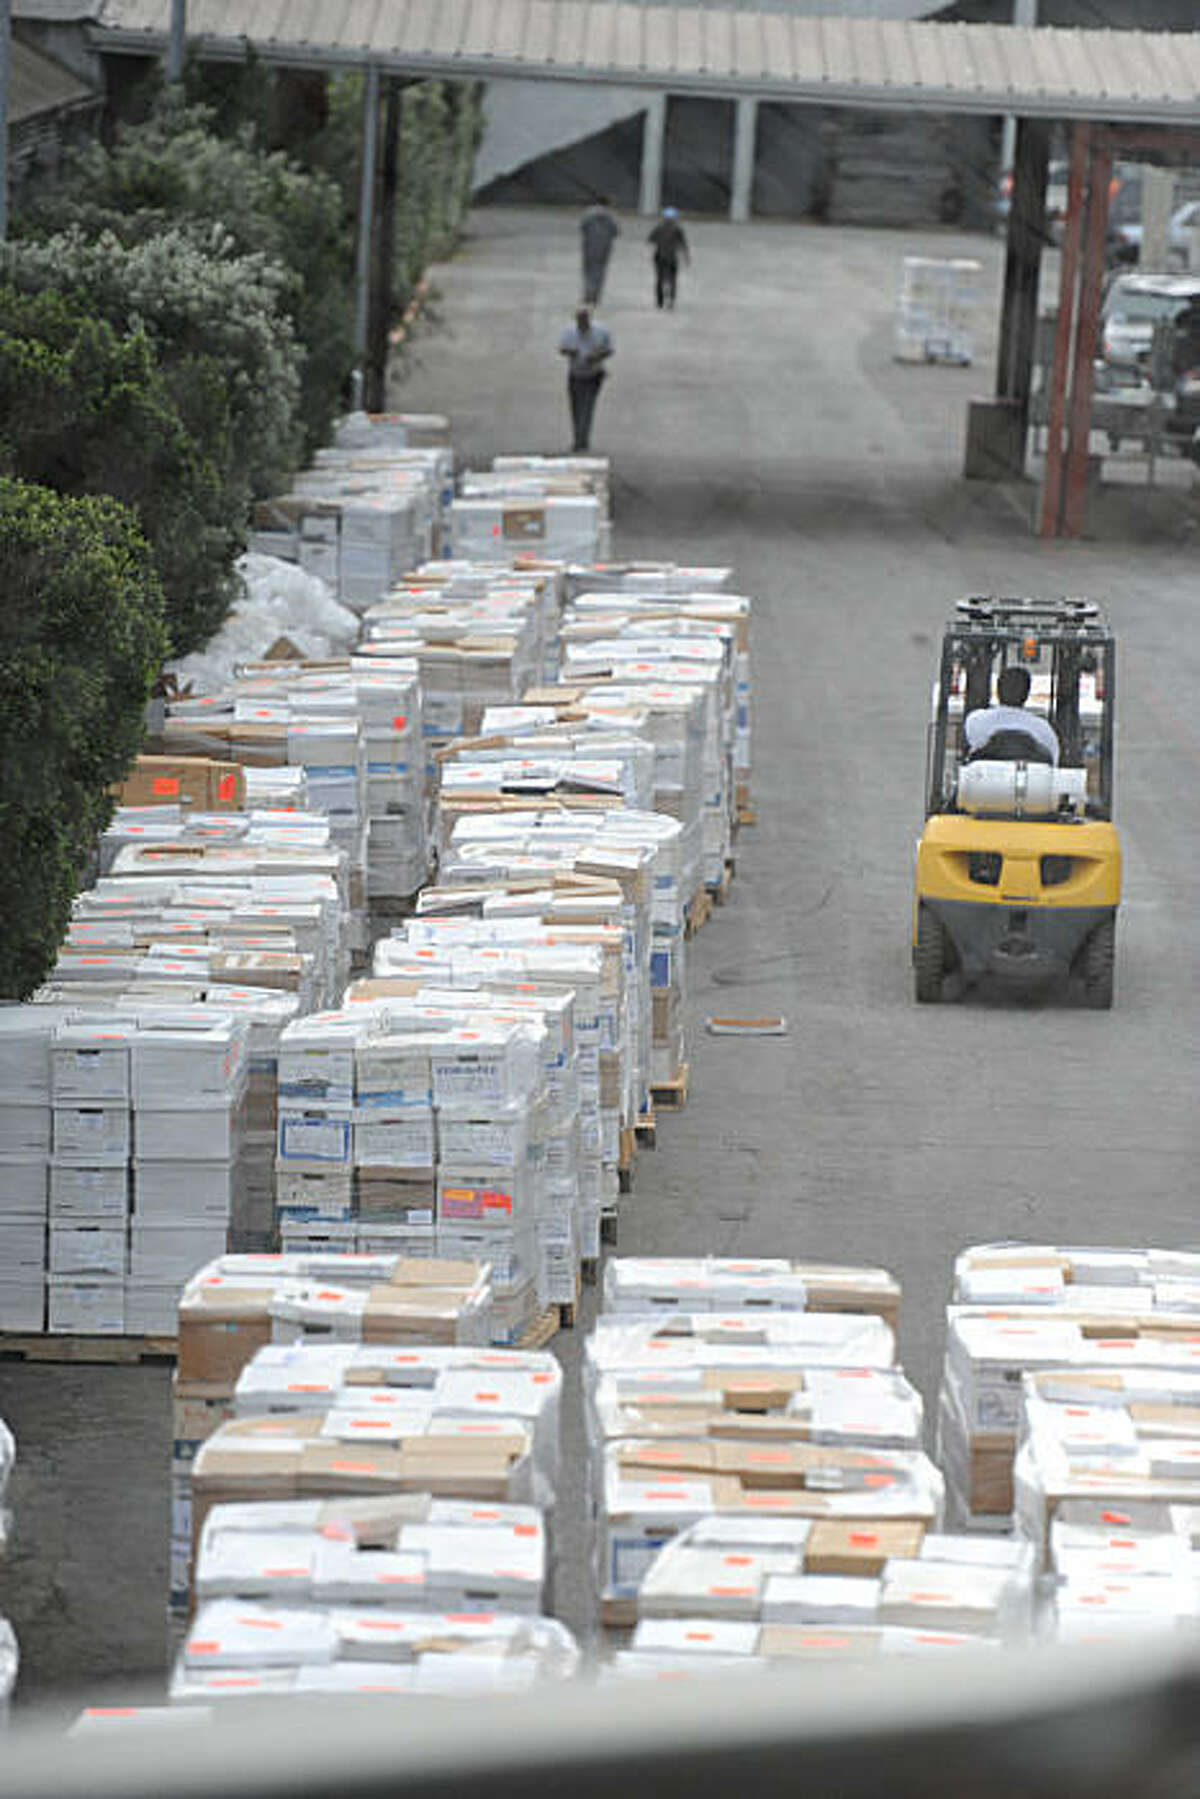 Palates of documents sit and are moved around outside of the Cow Palace in Daly City, Calif., Friday, March 4, 2011.